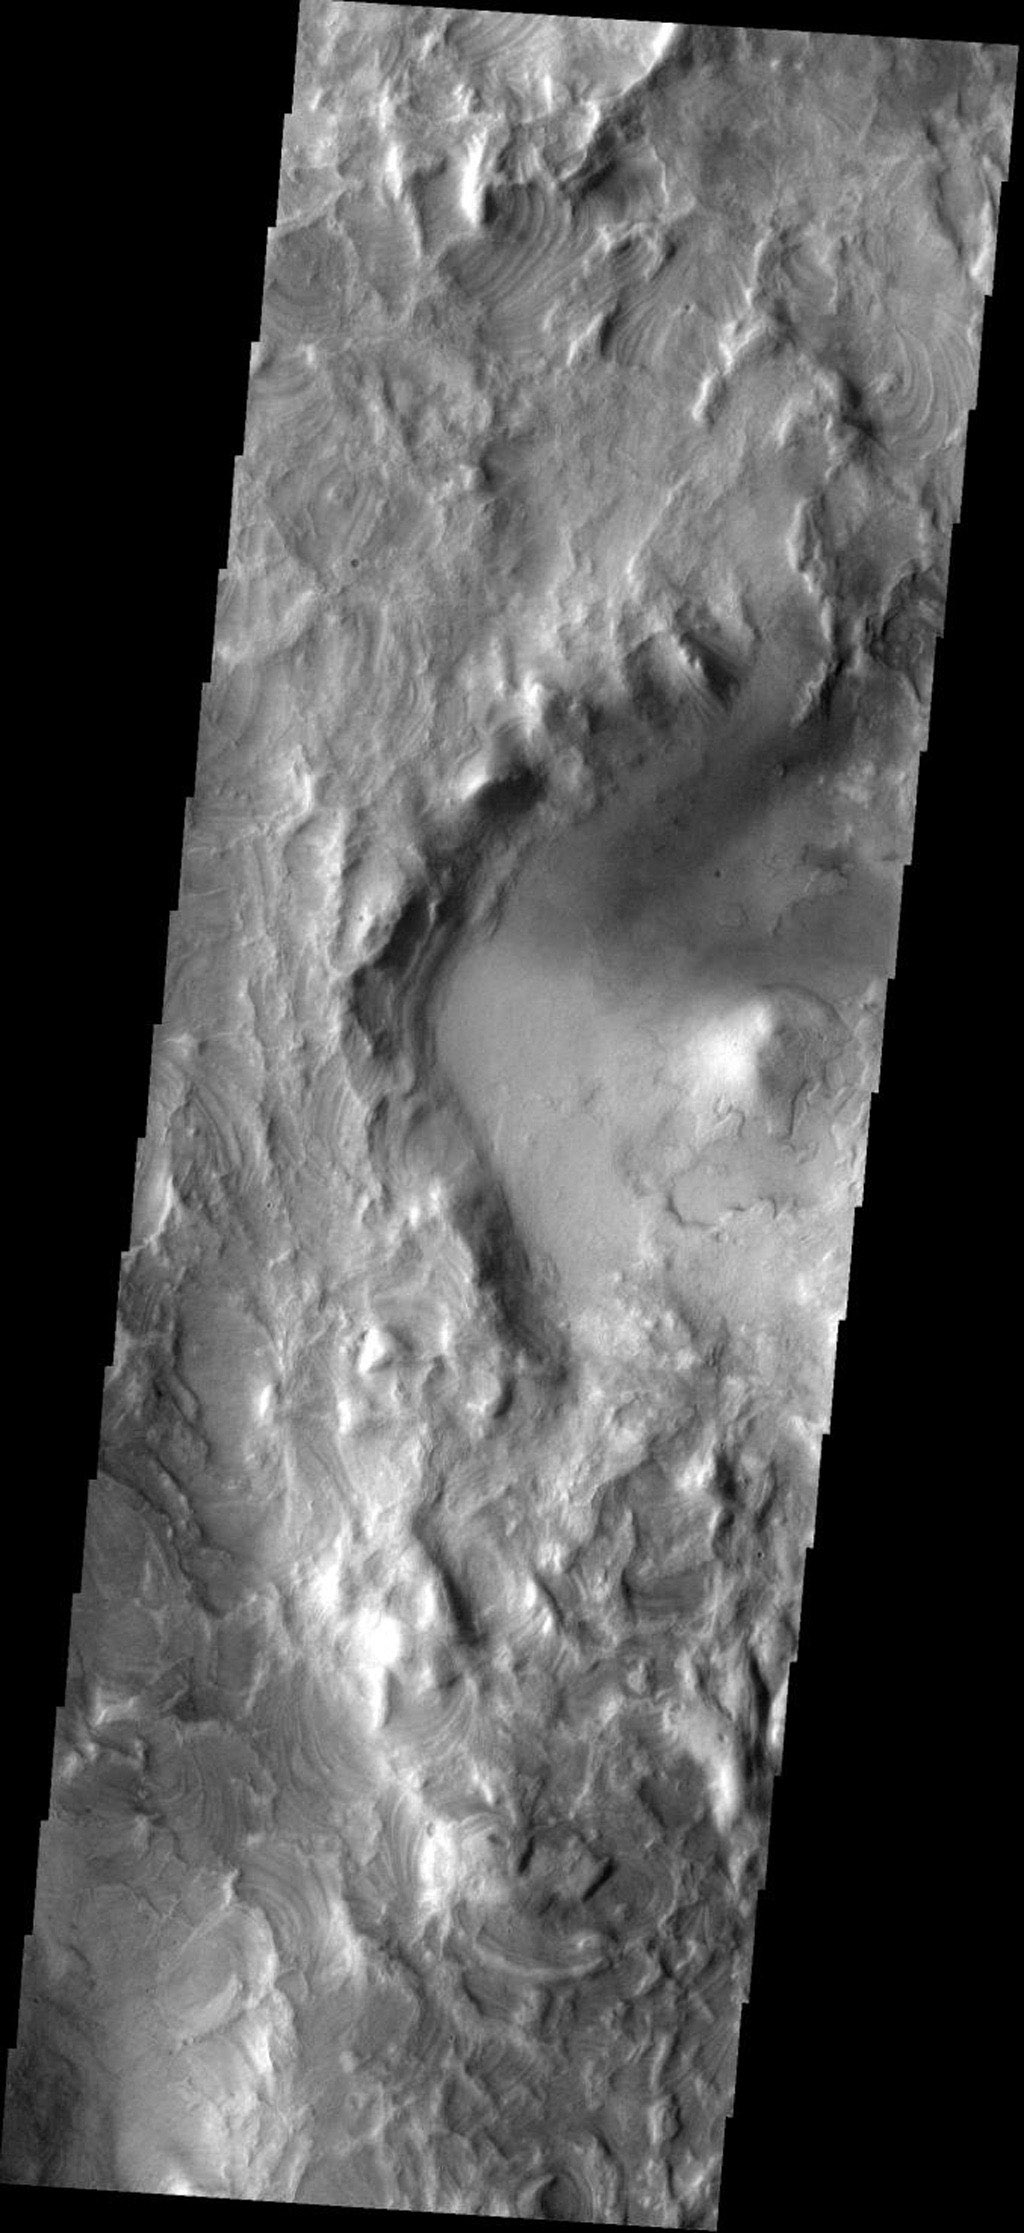 The erosion of the western rim of Hellas Basin on Mars has exposed a surface composed of layered material as seen by NASA's 2001 Mars Odyssey.